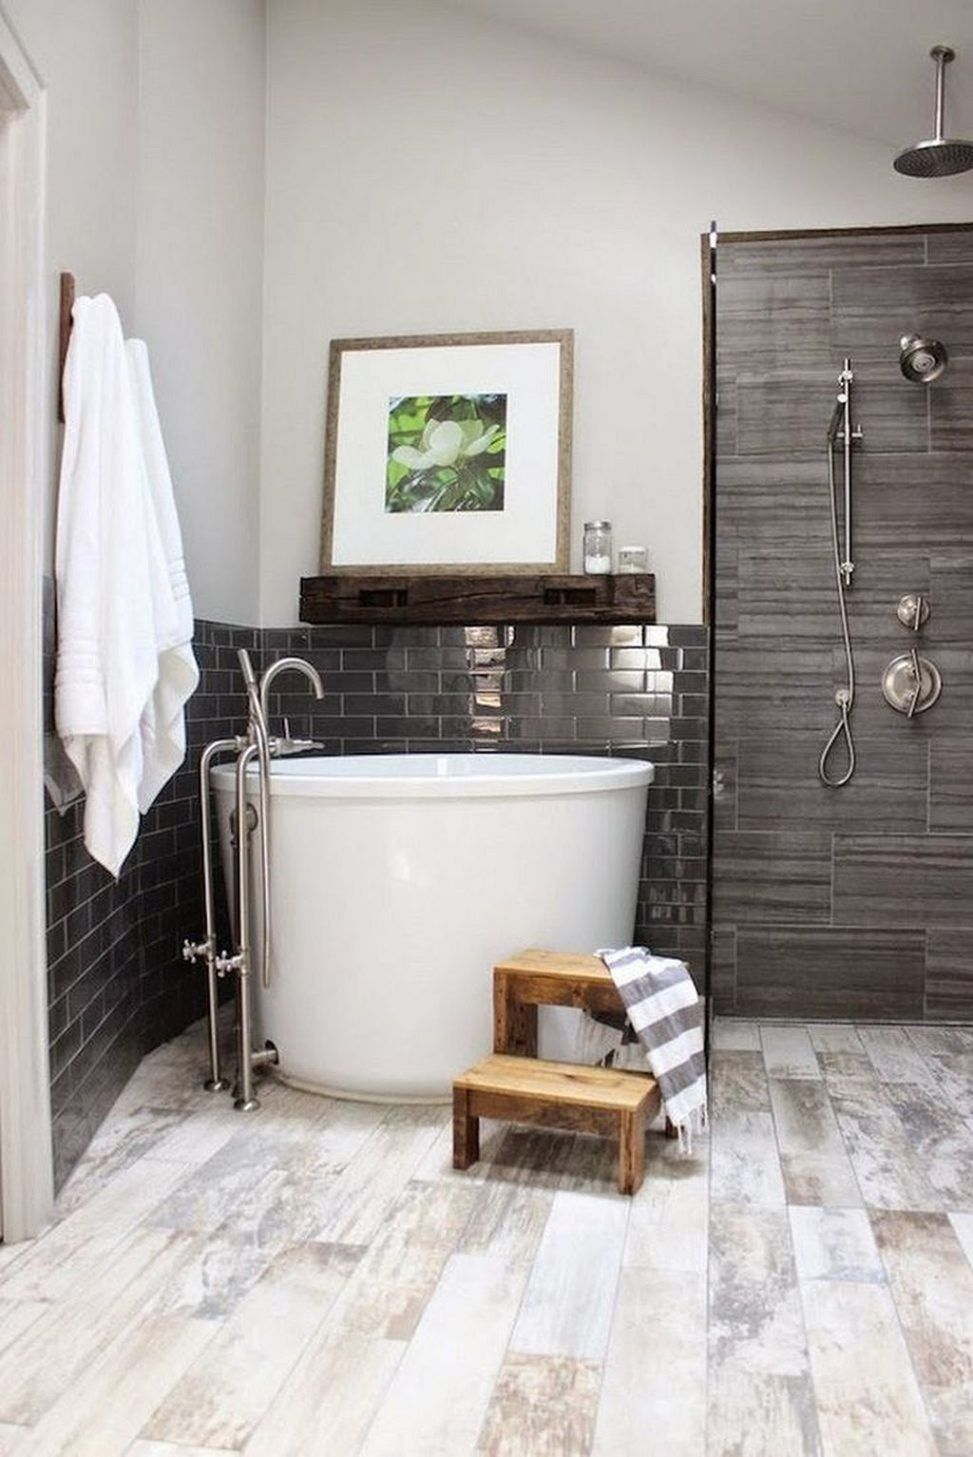 Tiny Bathroom Tub Shower Combo Remodeling Ideas 29 in 2018 ...